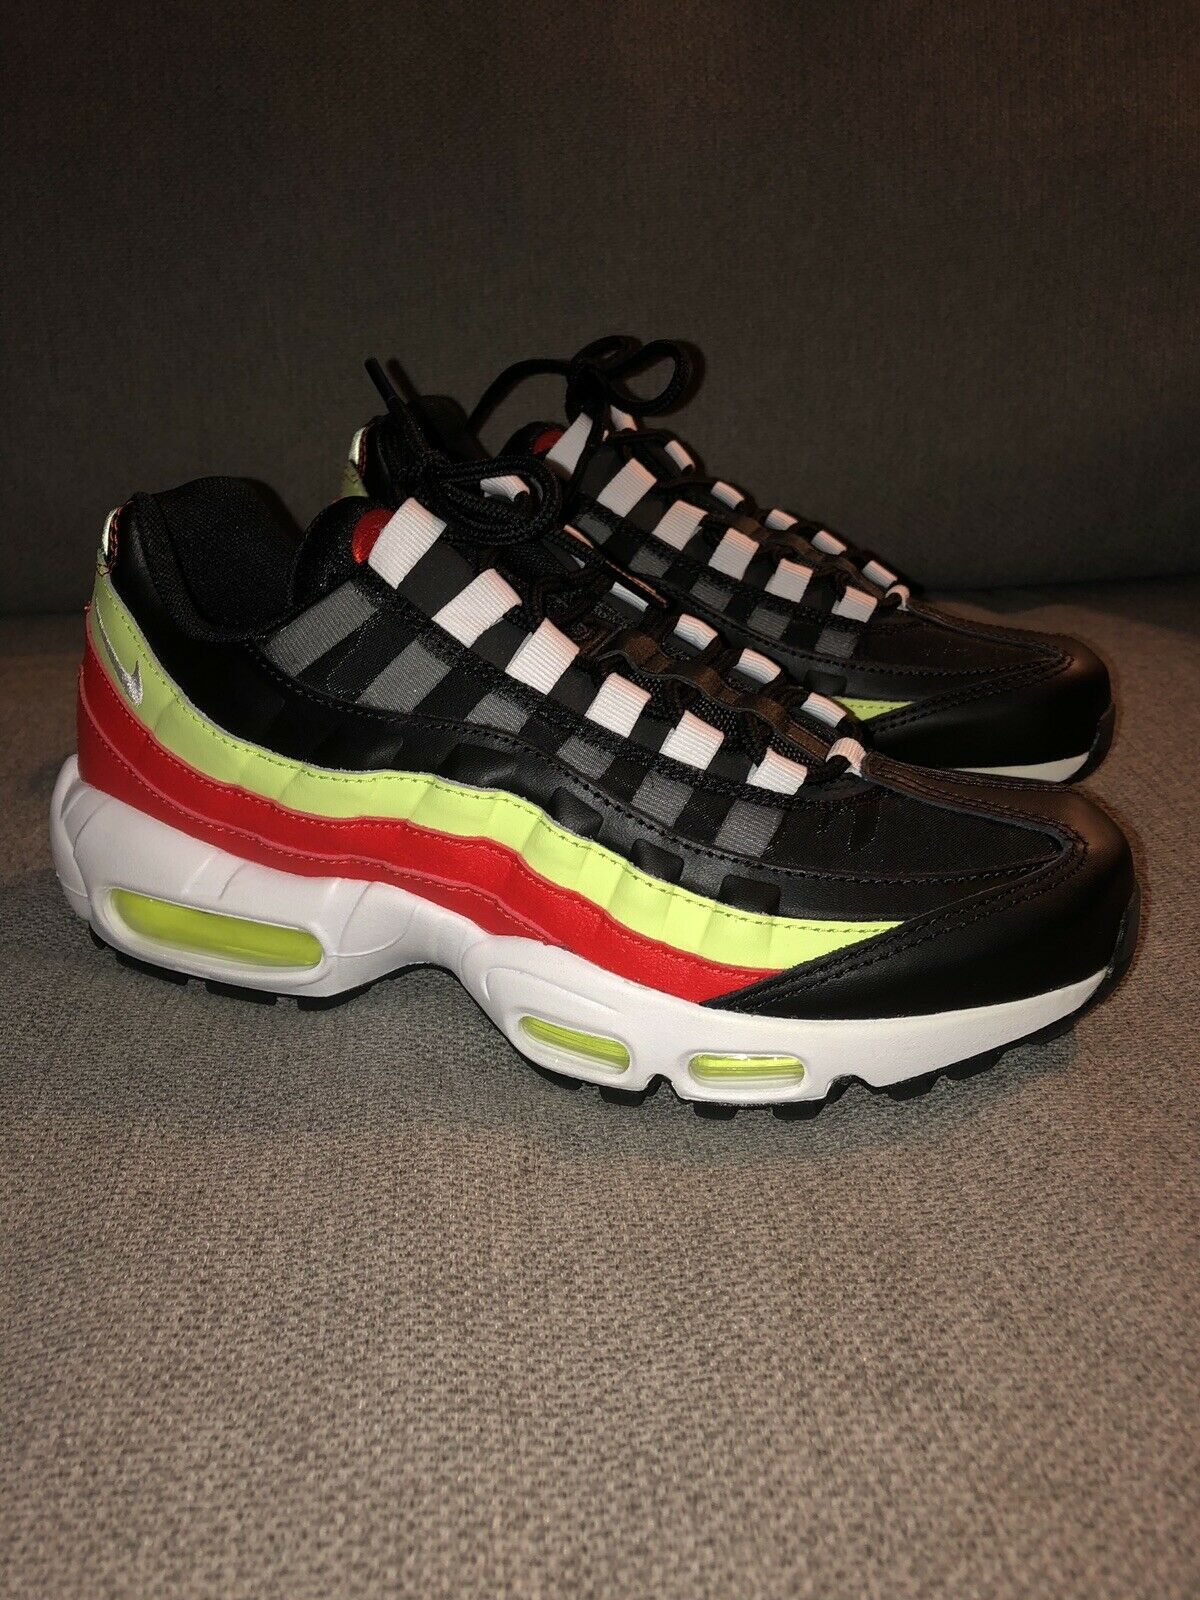 Nike Women's Air Max 95 Black Red Volt 307960-019 Size 8.5